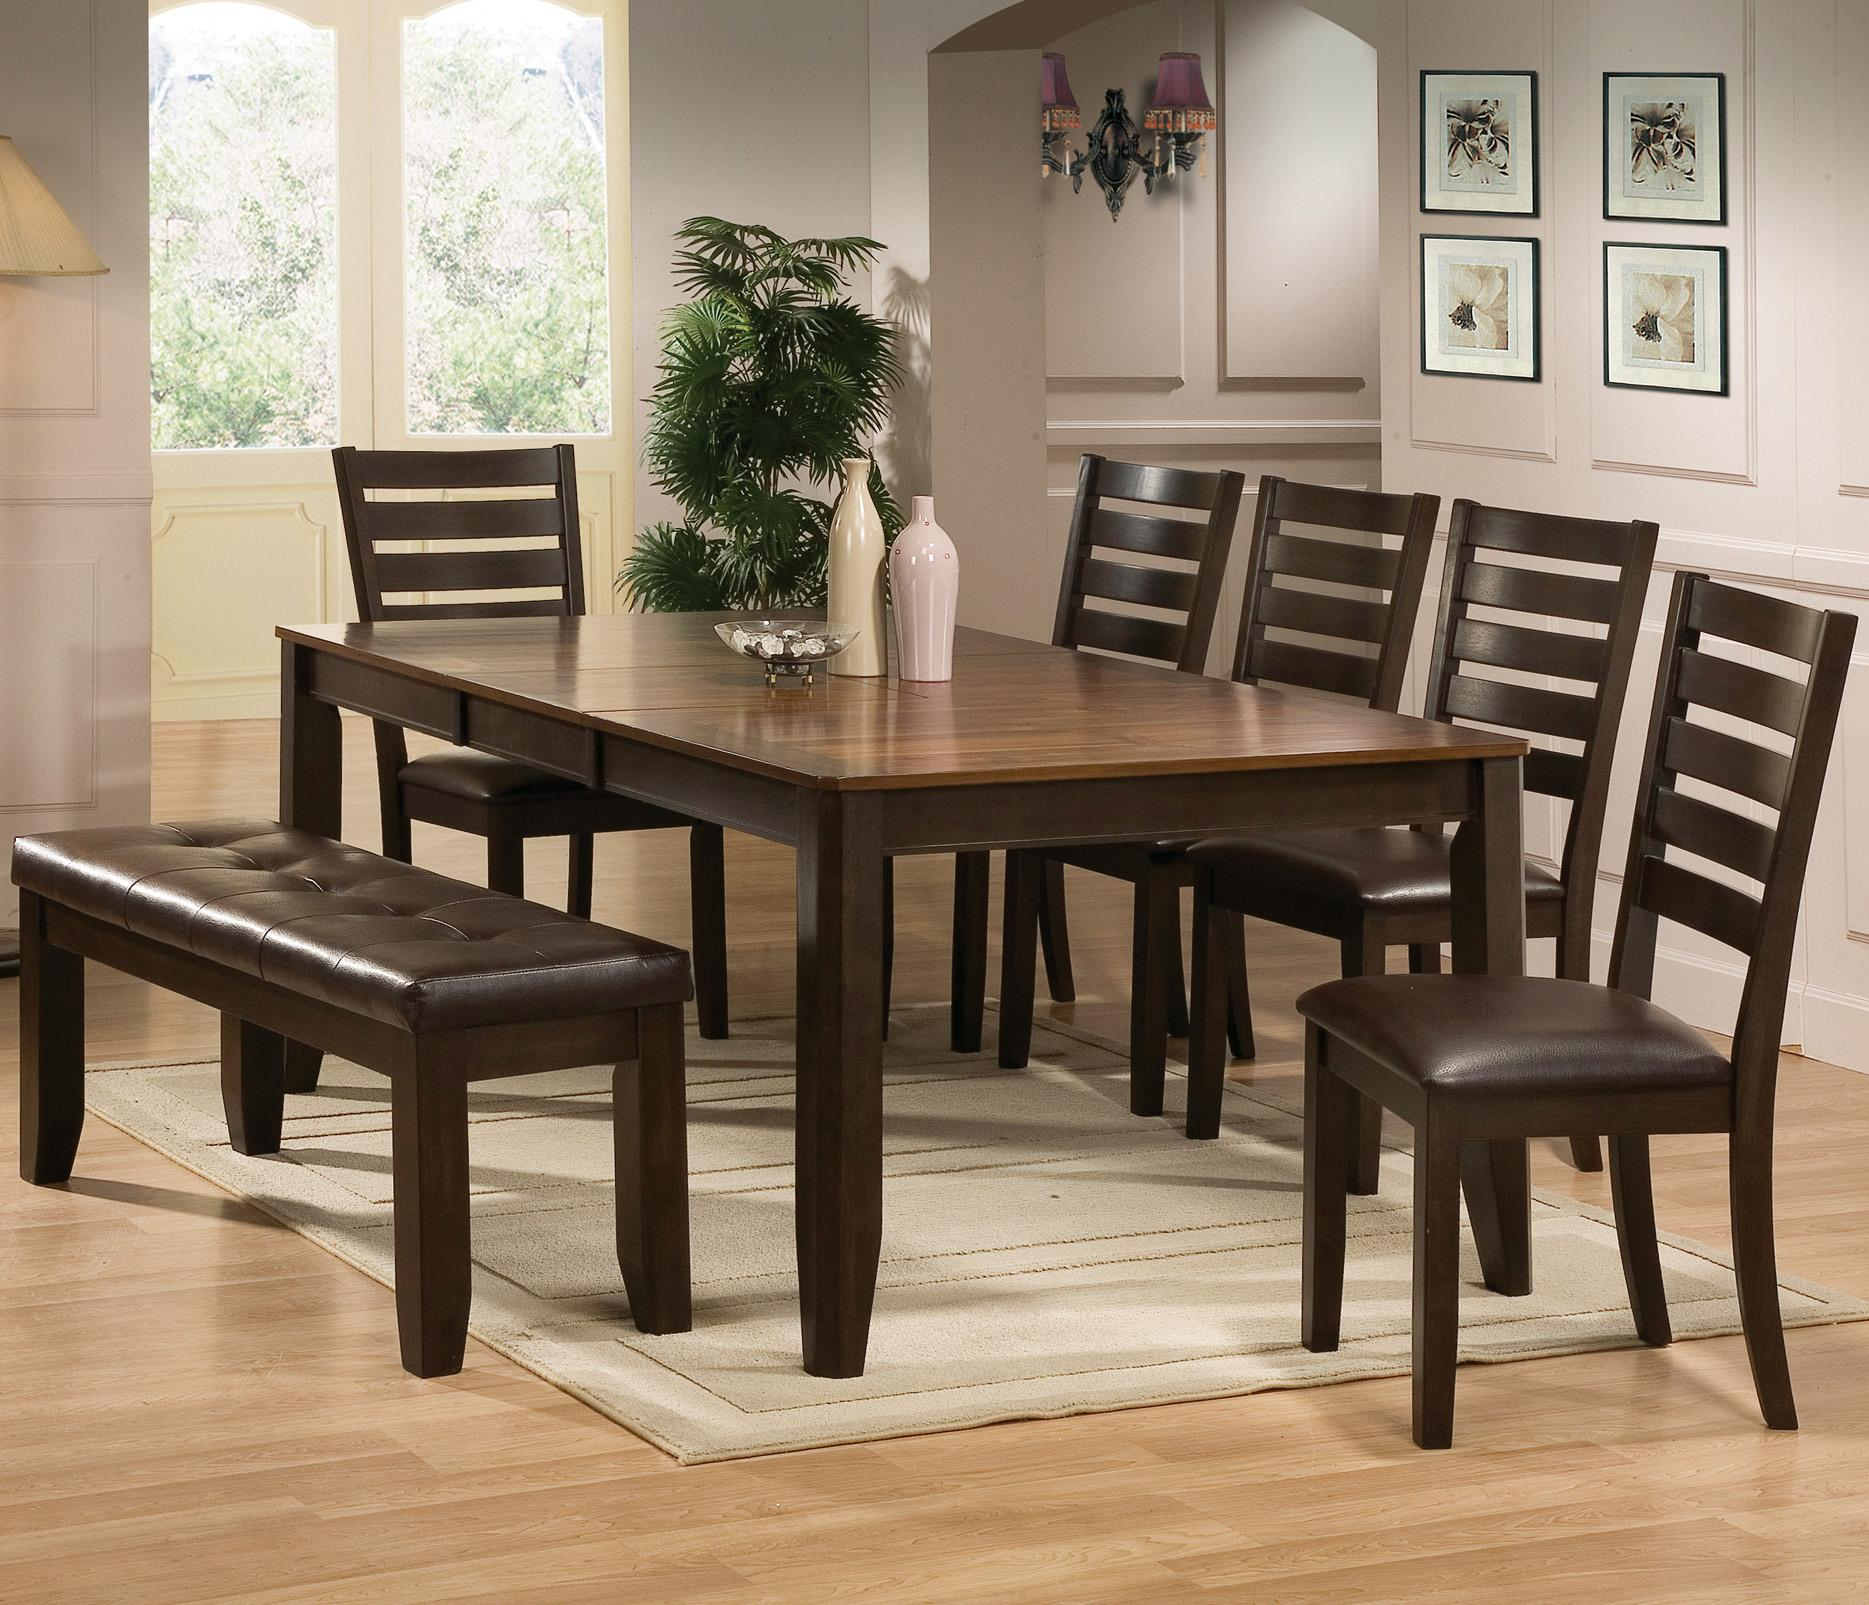 Lovely Crown Mark Elliott 7 Piece Dining Table Set   Item Number: 2328T 4272+